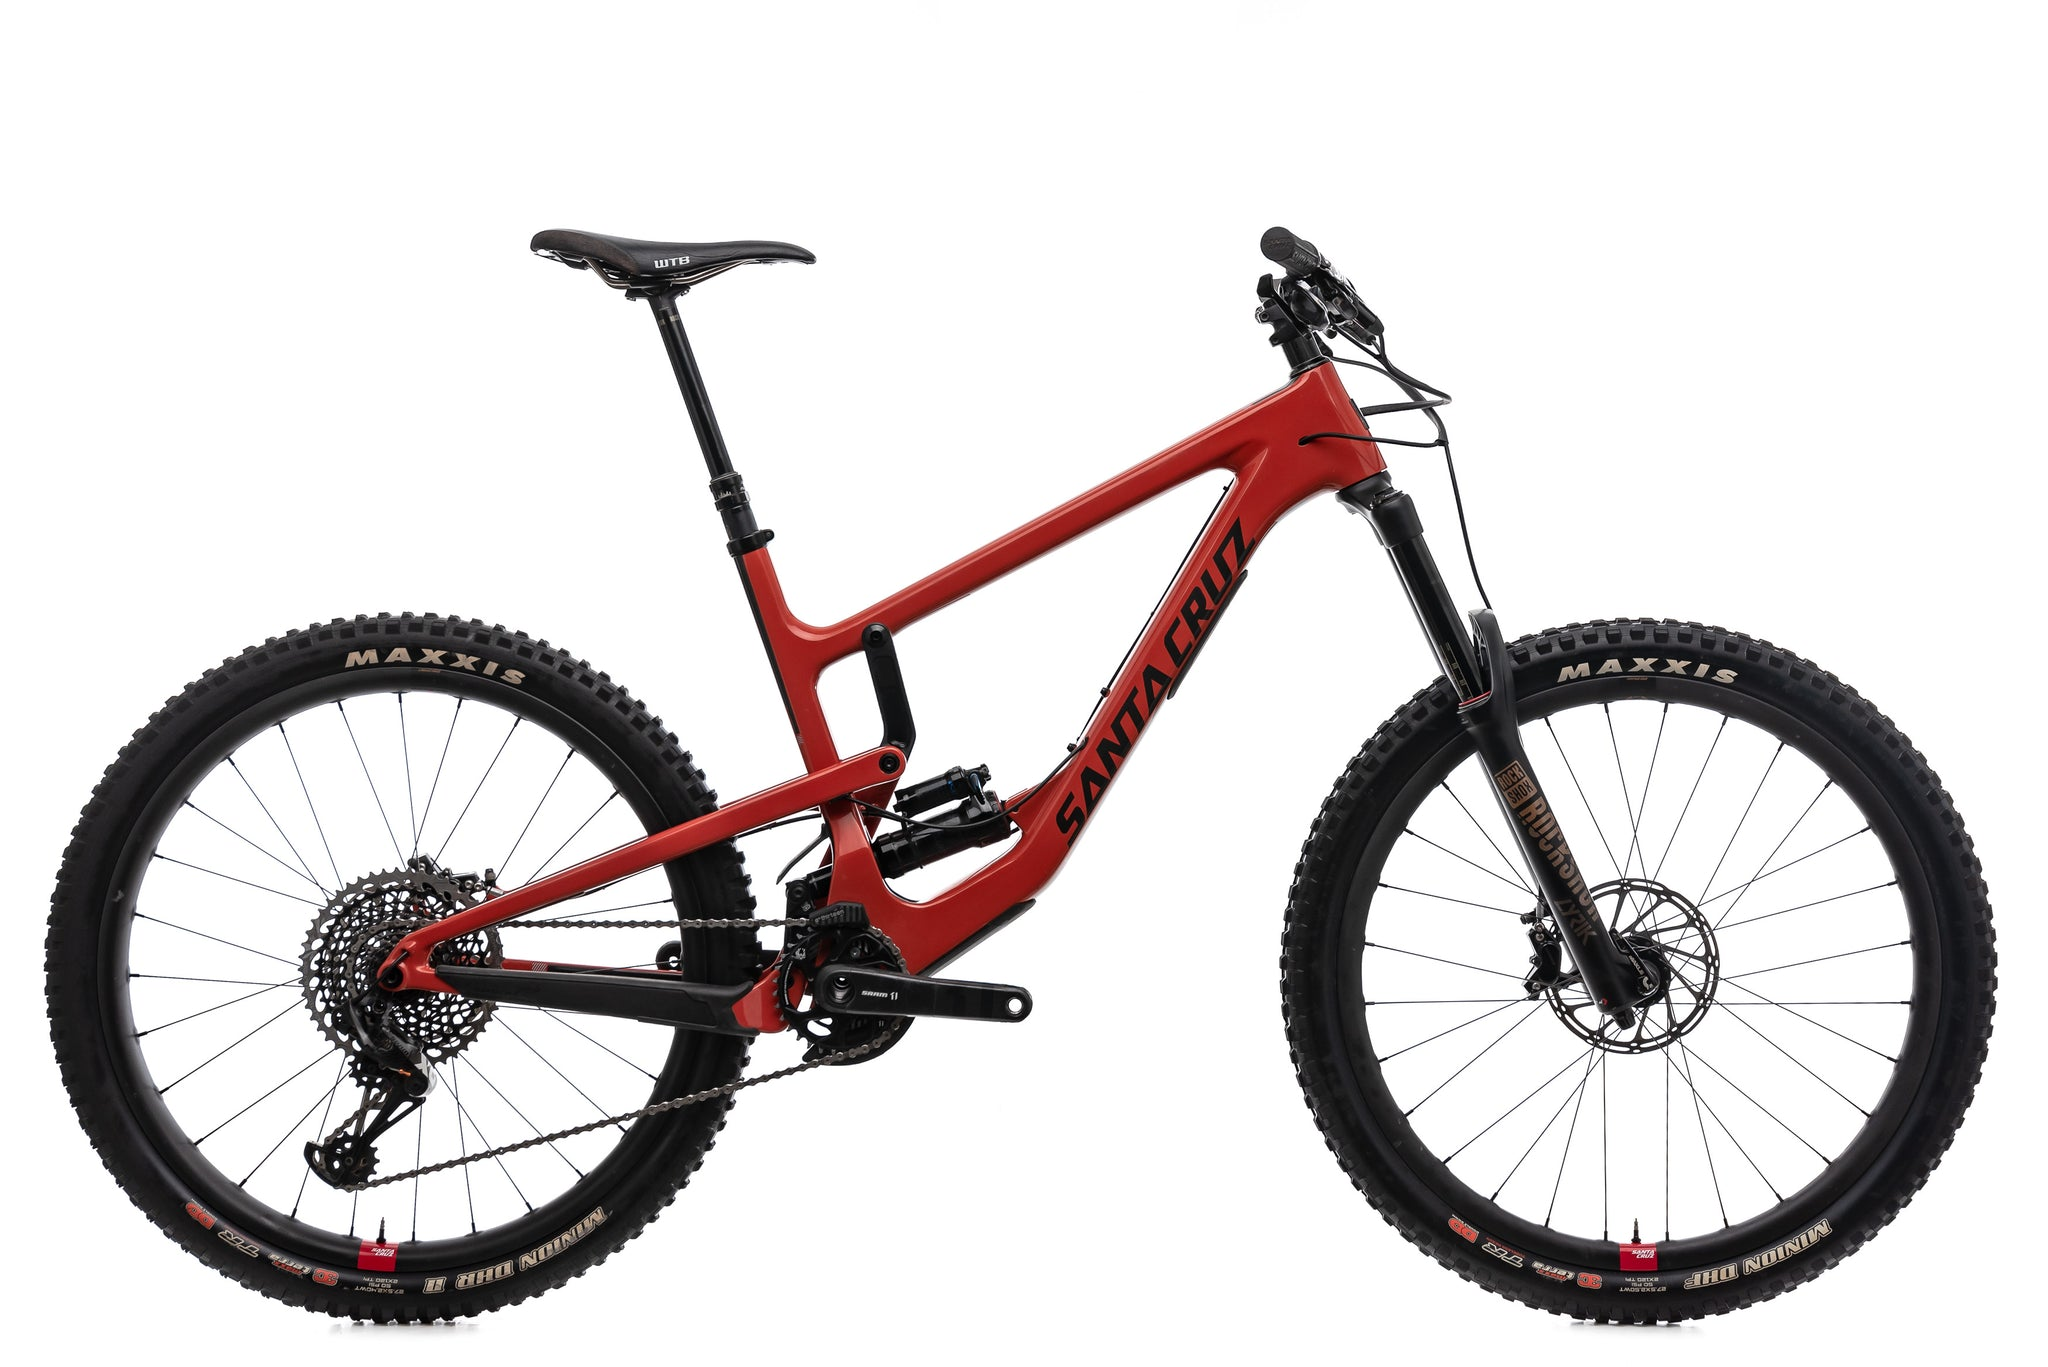 Santa Cruz Nomad Used Mountain Bike